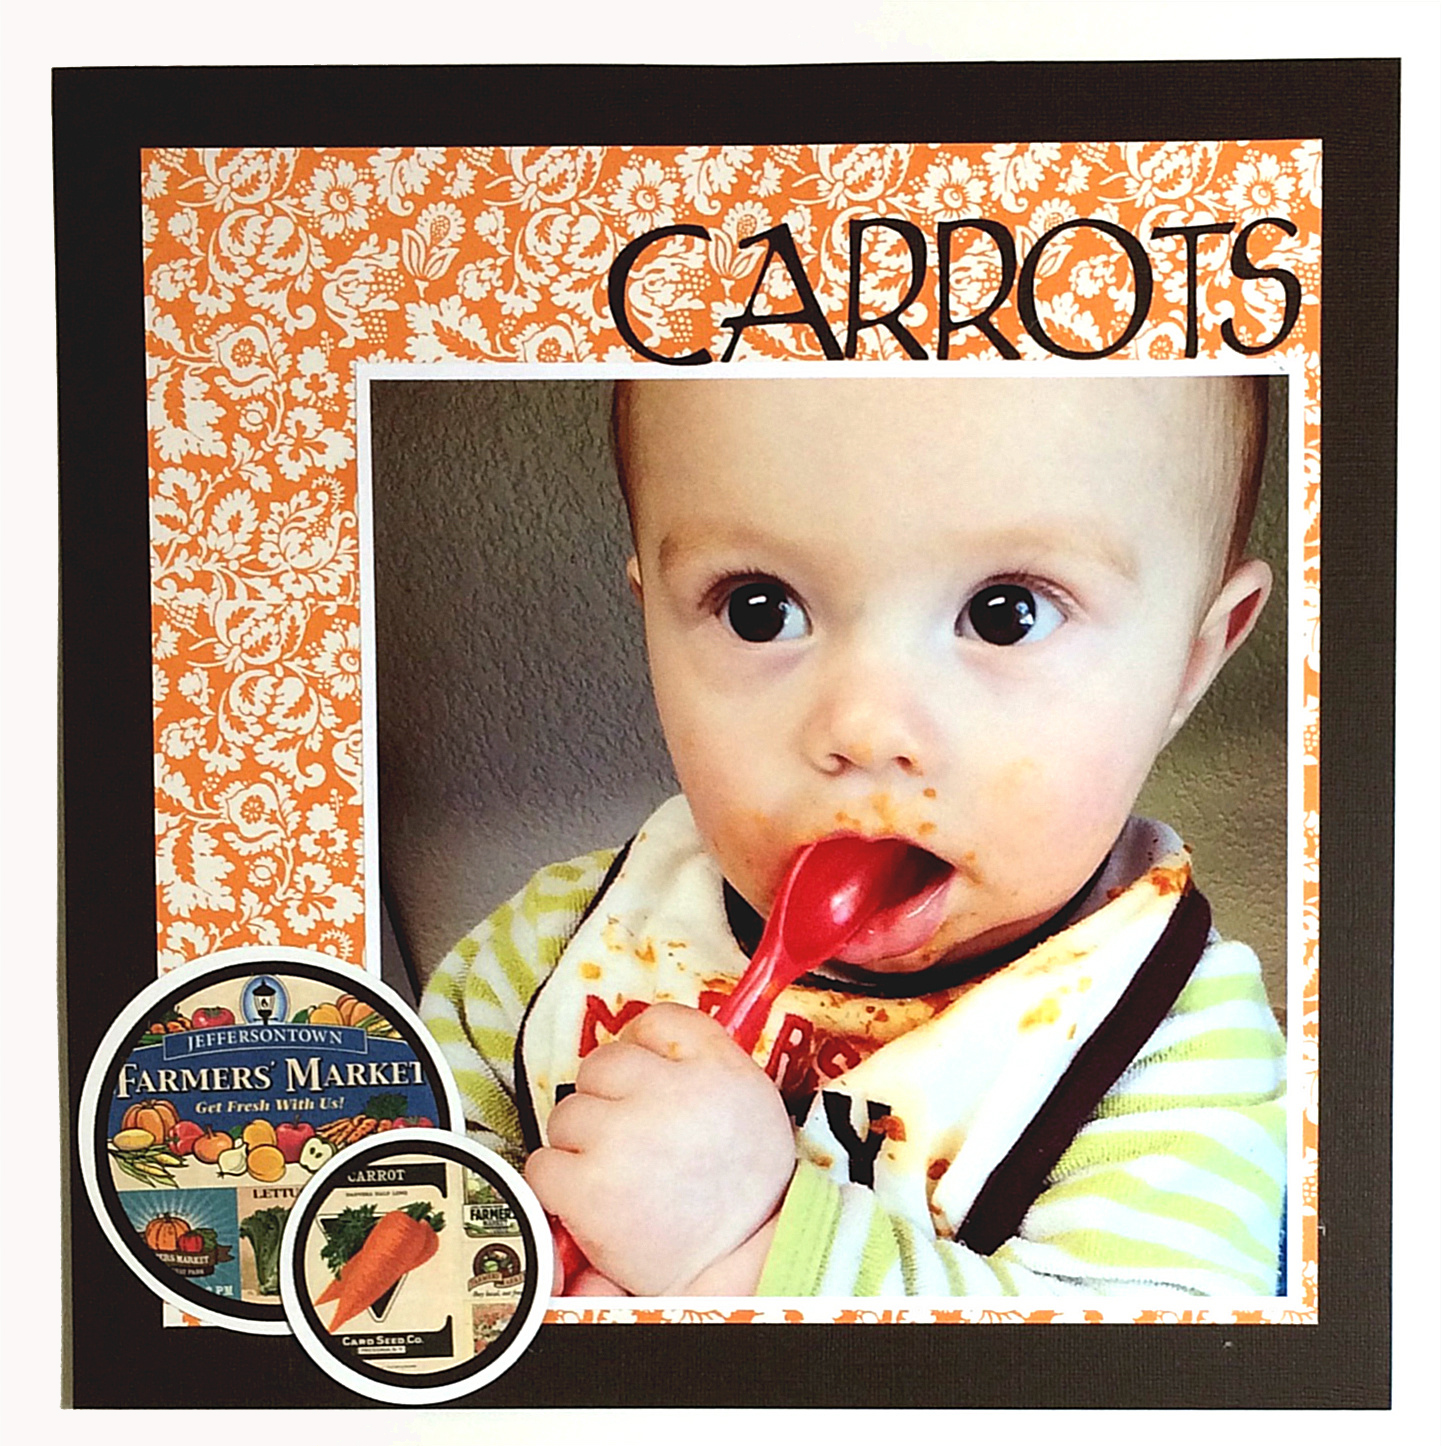 Carrots - after